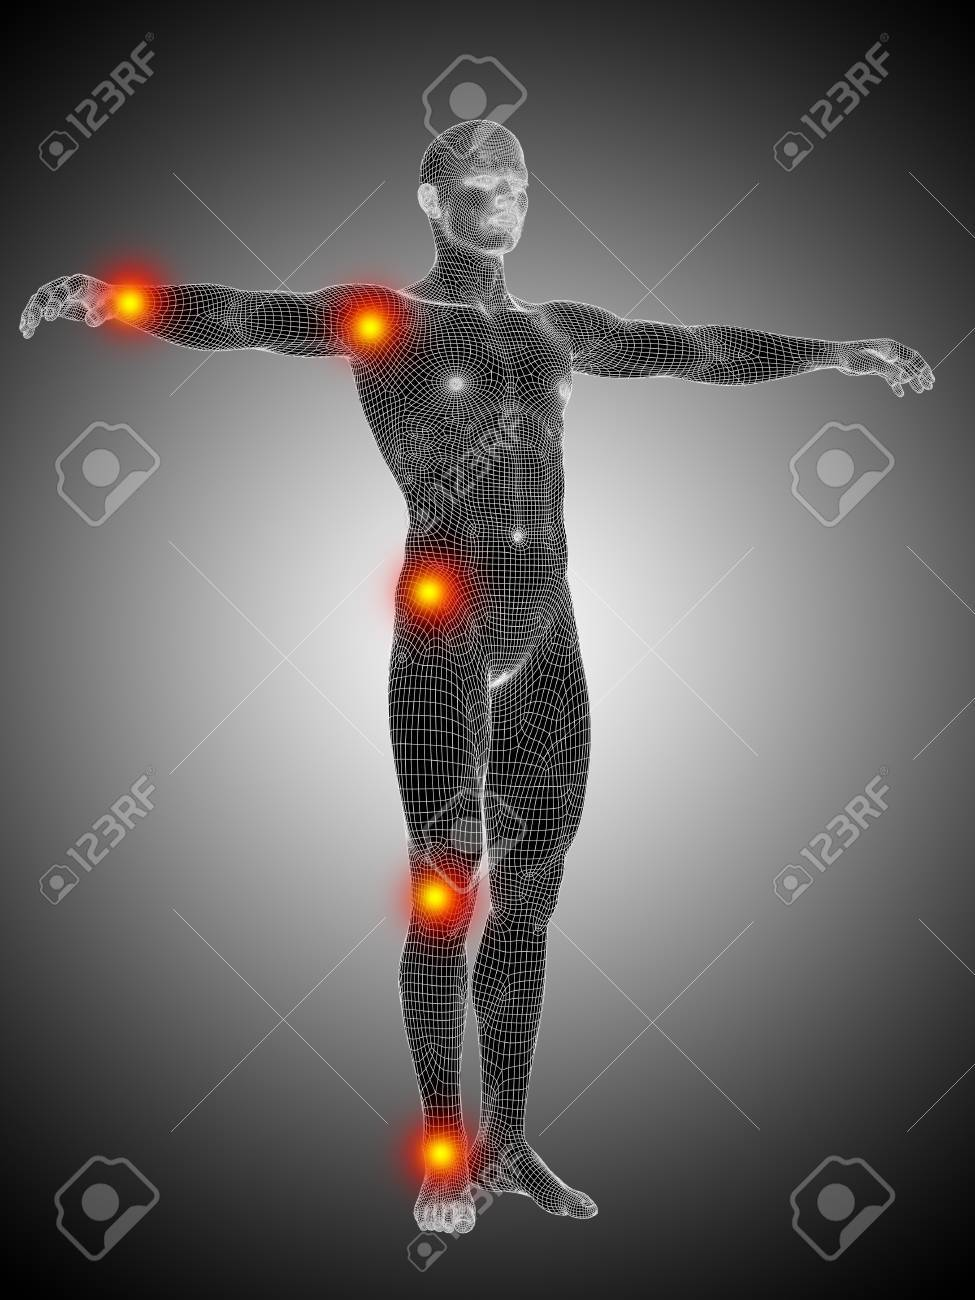 Conceptual Wireframe Human Or Man Anatomy Body With Joint Pain Stock ...